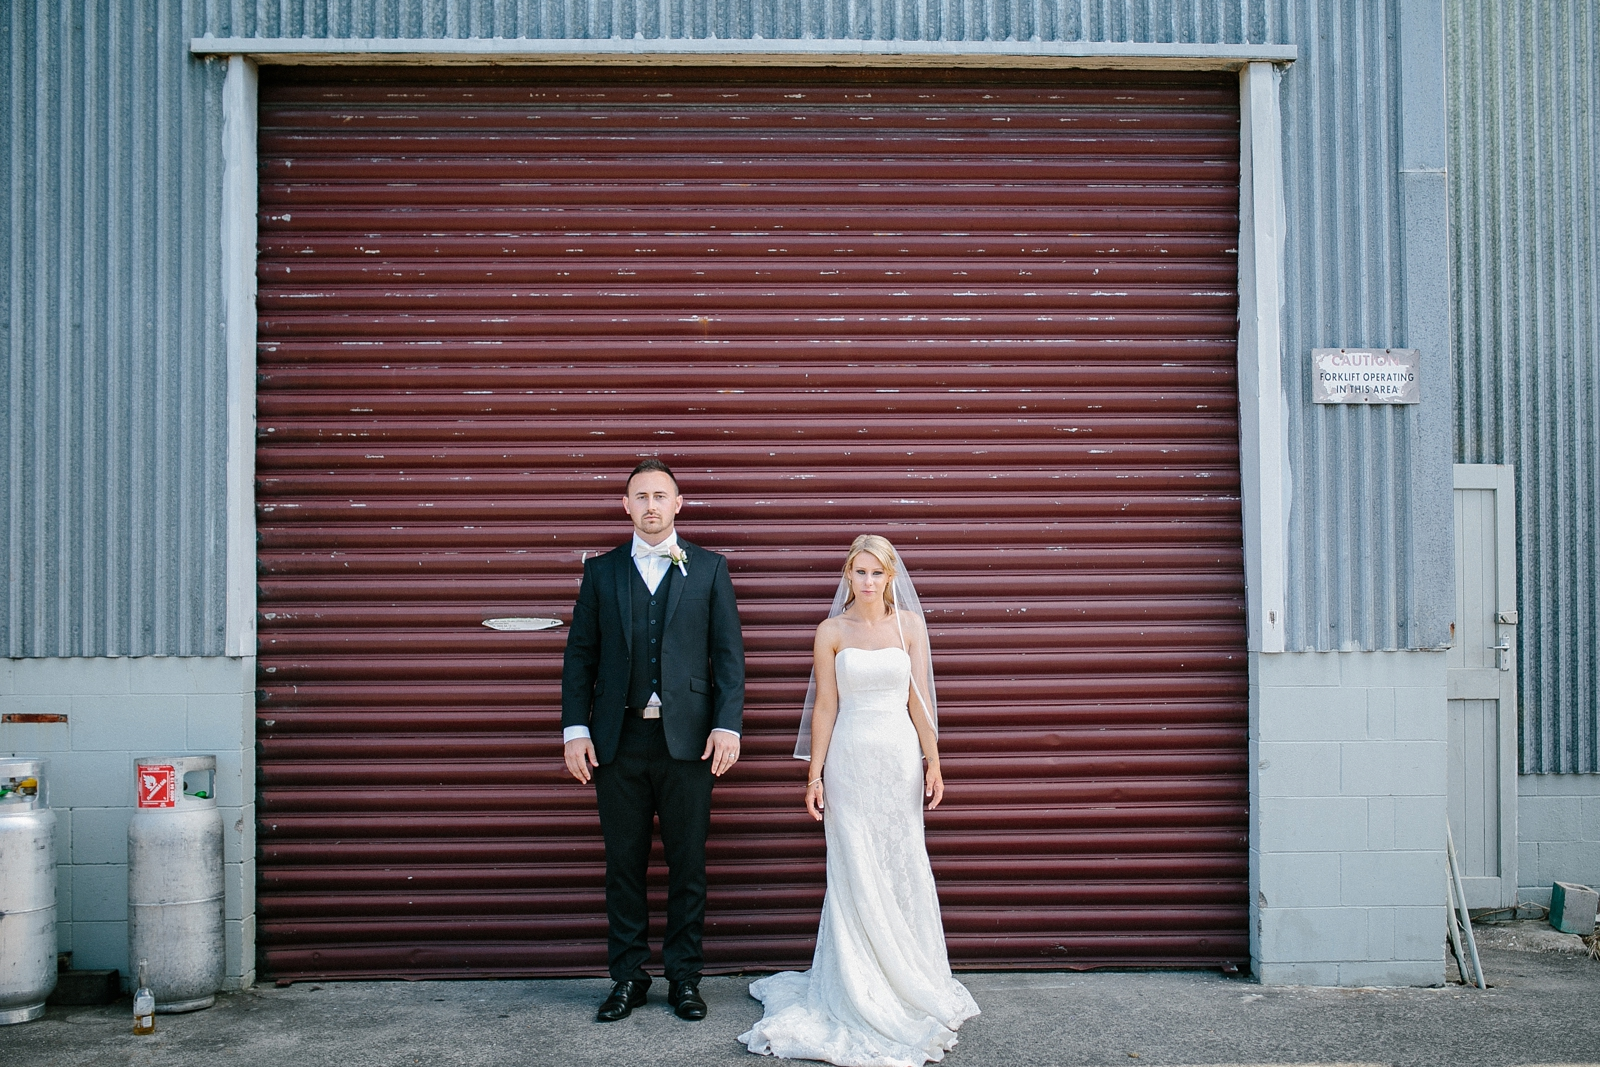 ConnorLaura_Auckland Wedding Photographer_Patty Lagera_0088.jpg